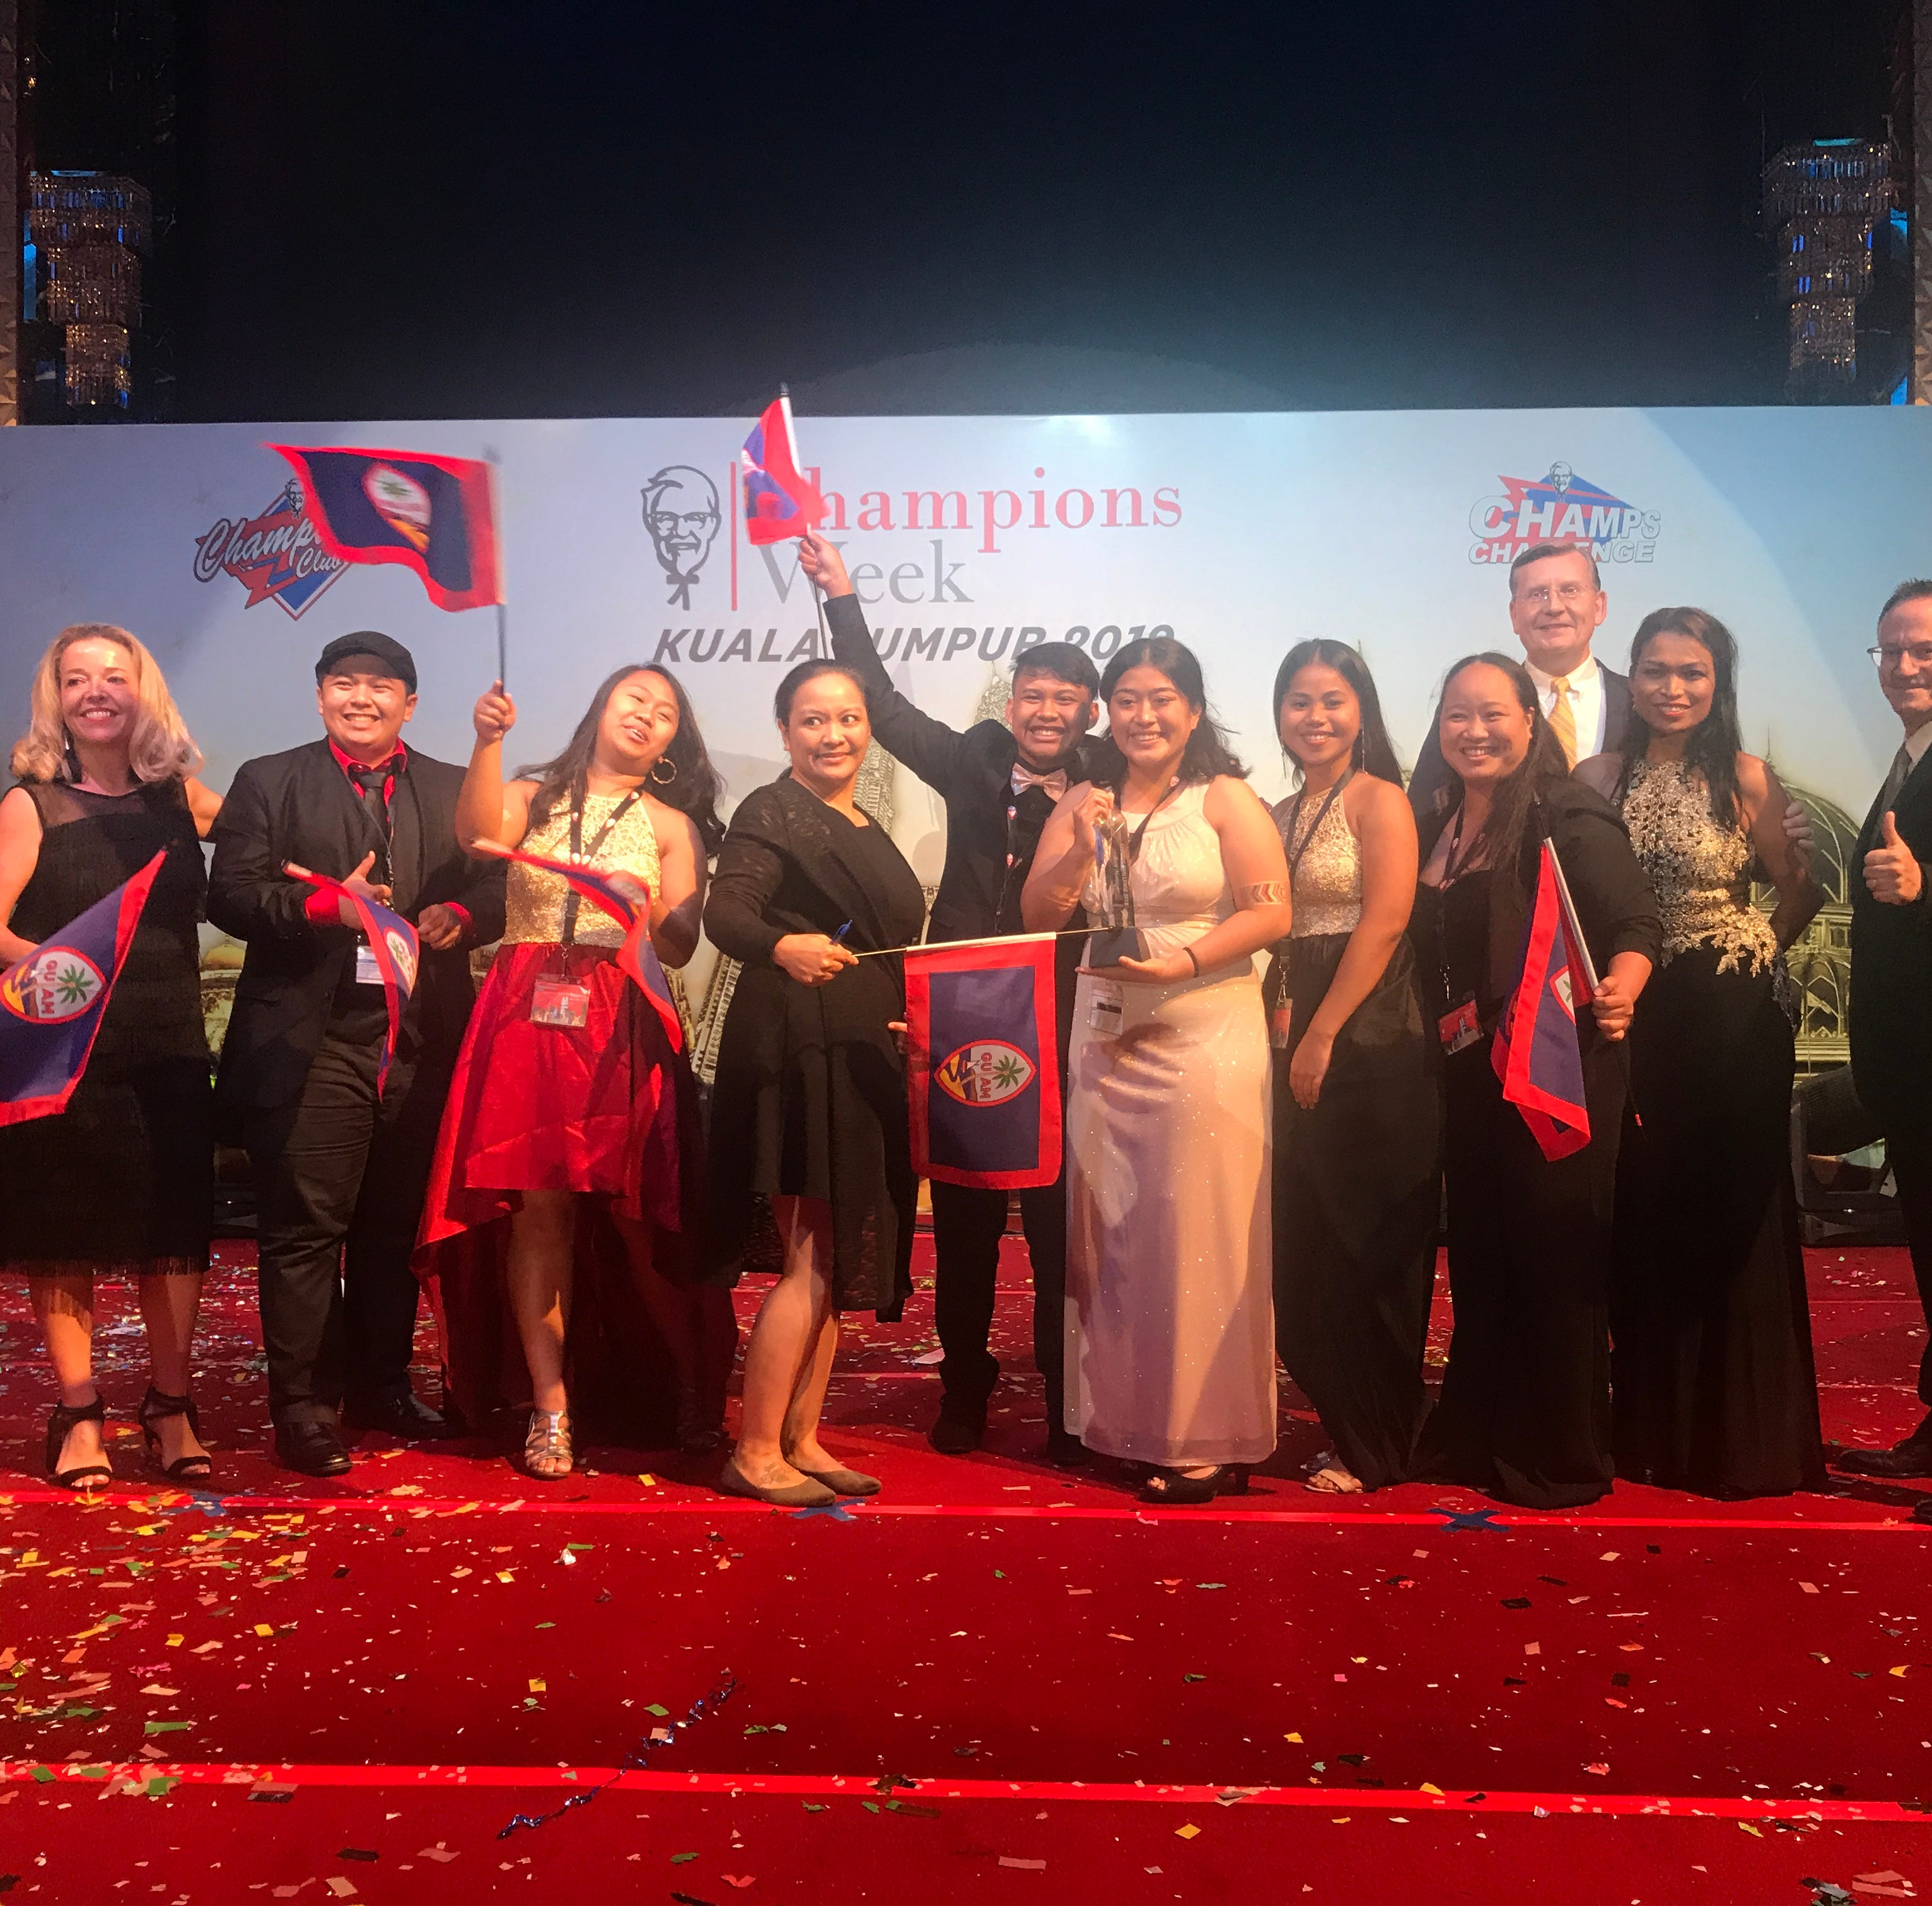 KFC Guam team wins KFC Asia Pacific Competition in Kuala Lumpur